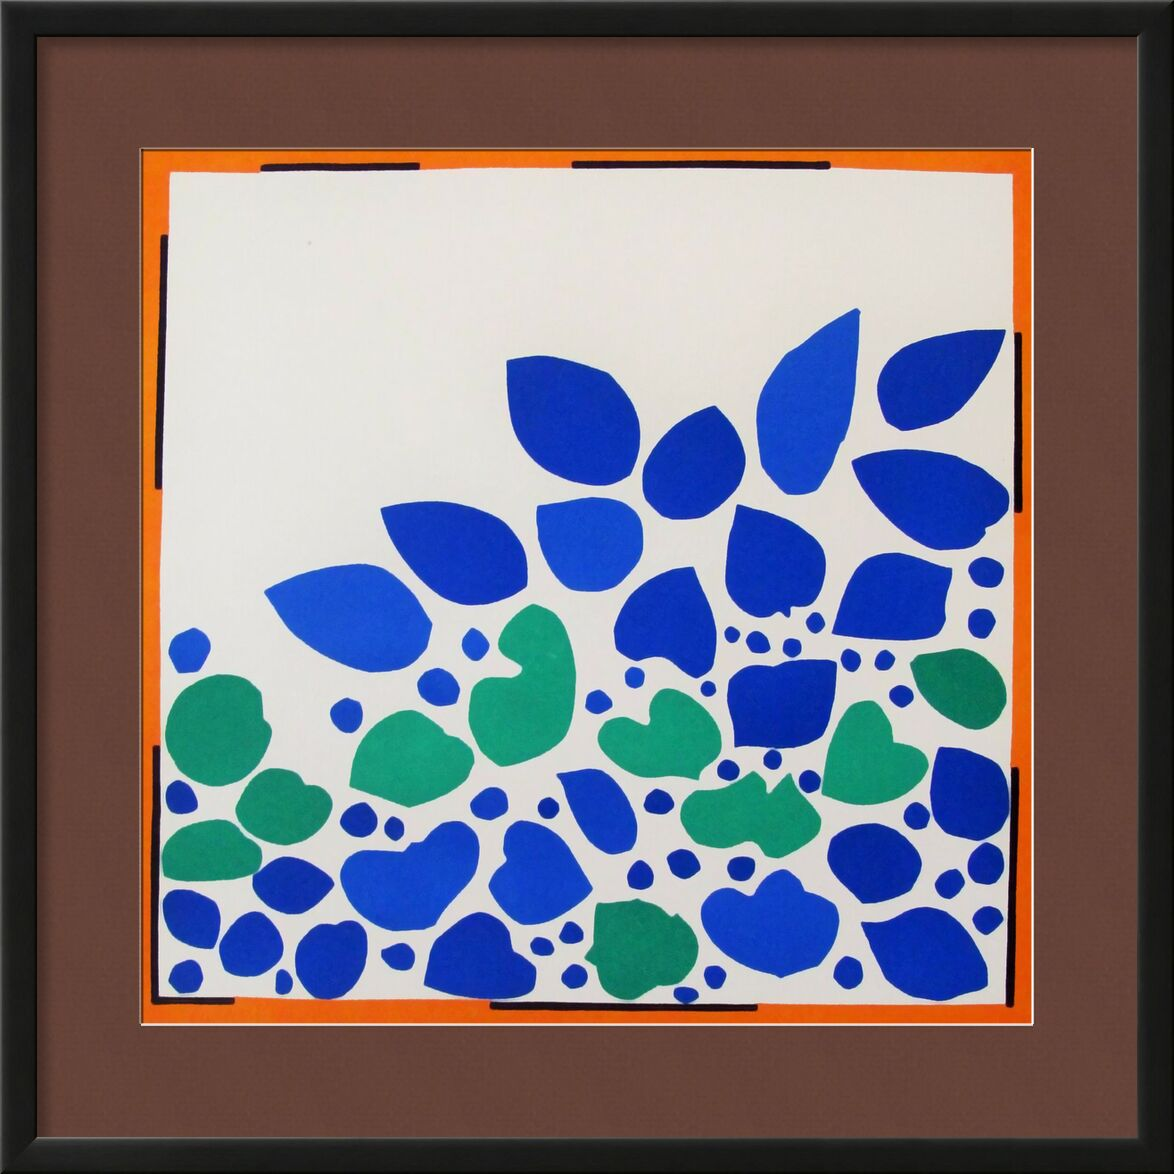 Verve, Ivy - Henri Matisse from AUX BEAUX-ARTS, Prodi Art, Matisse, plant, Ivy, abstract, cooking